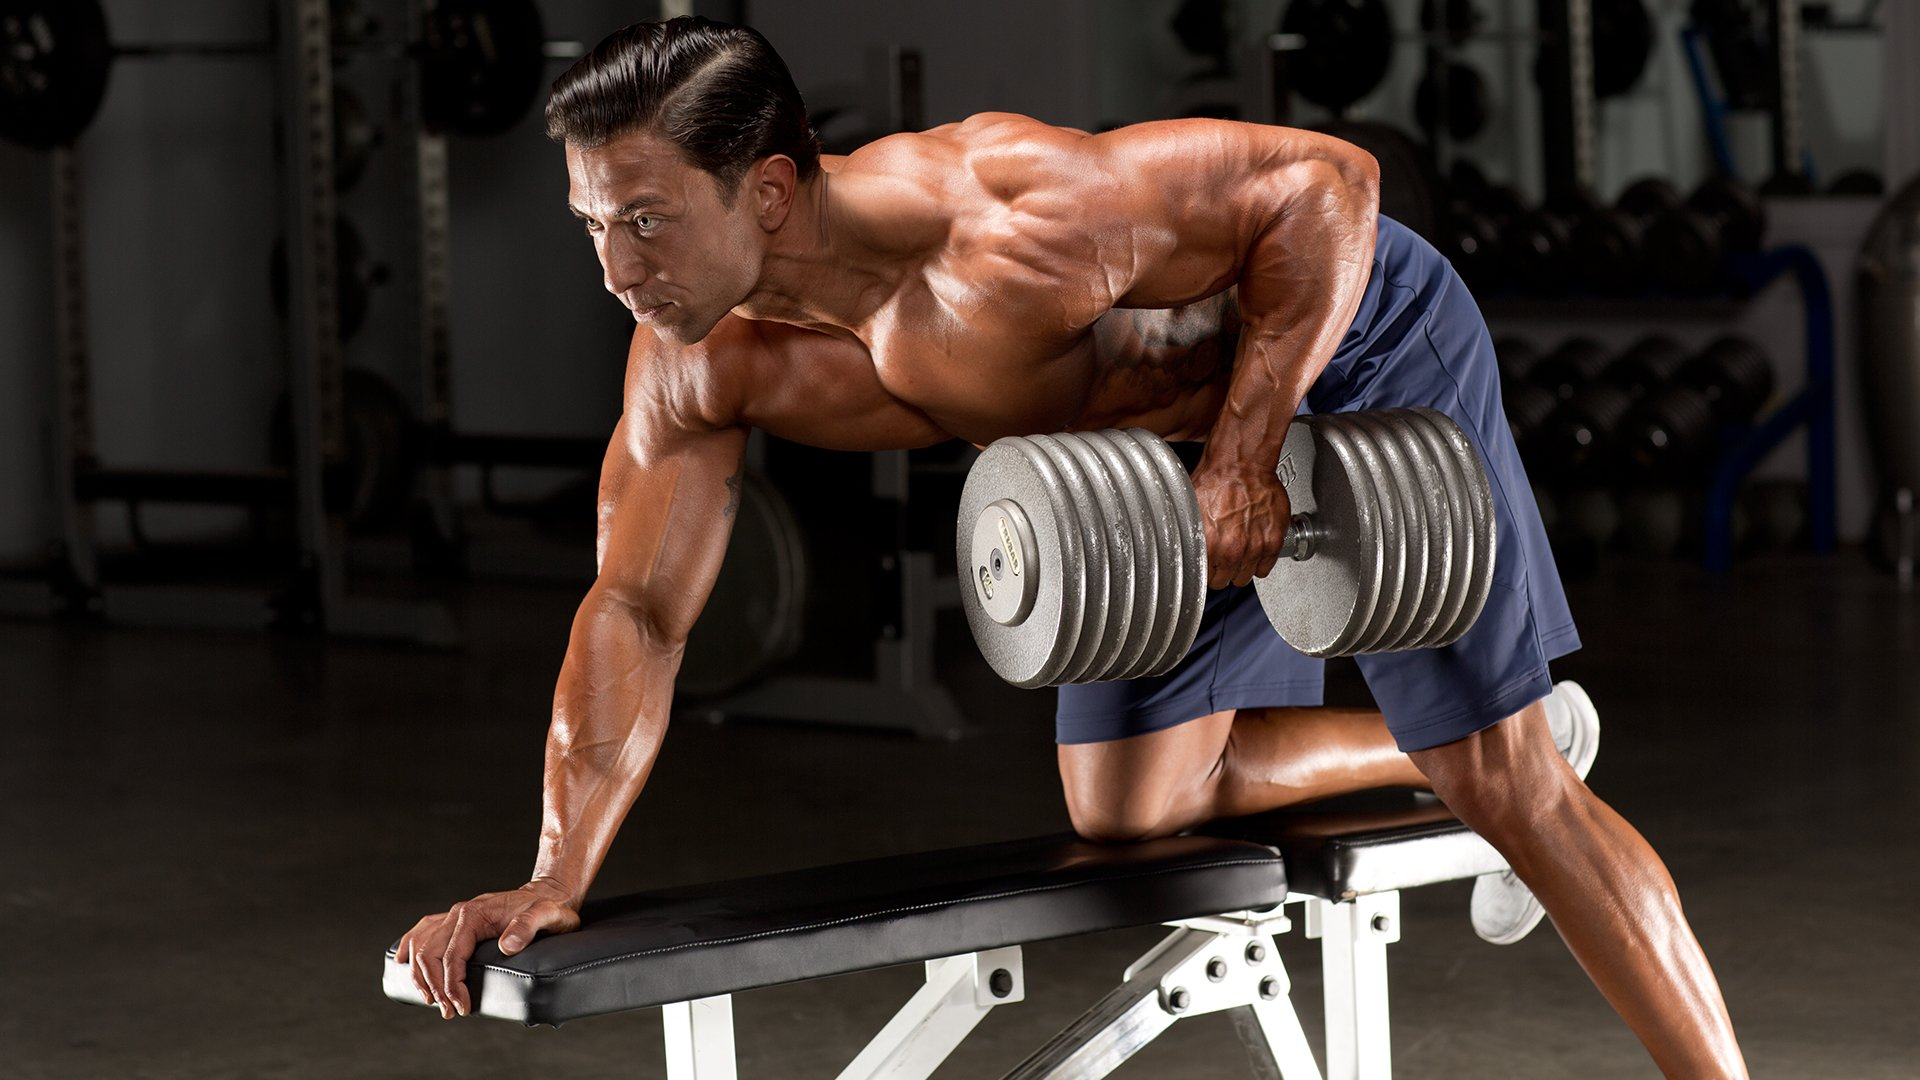 Why Bigger Isn't Better when it Comes to Muscle Building?